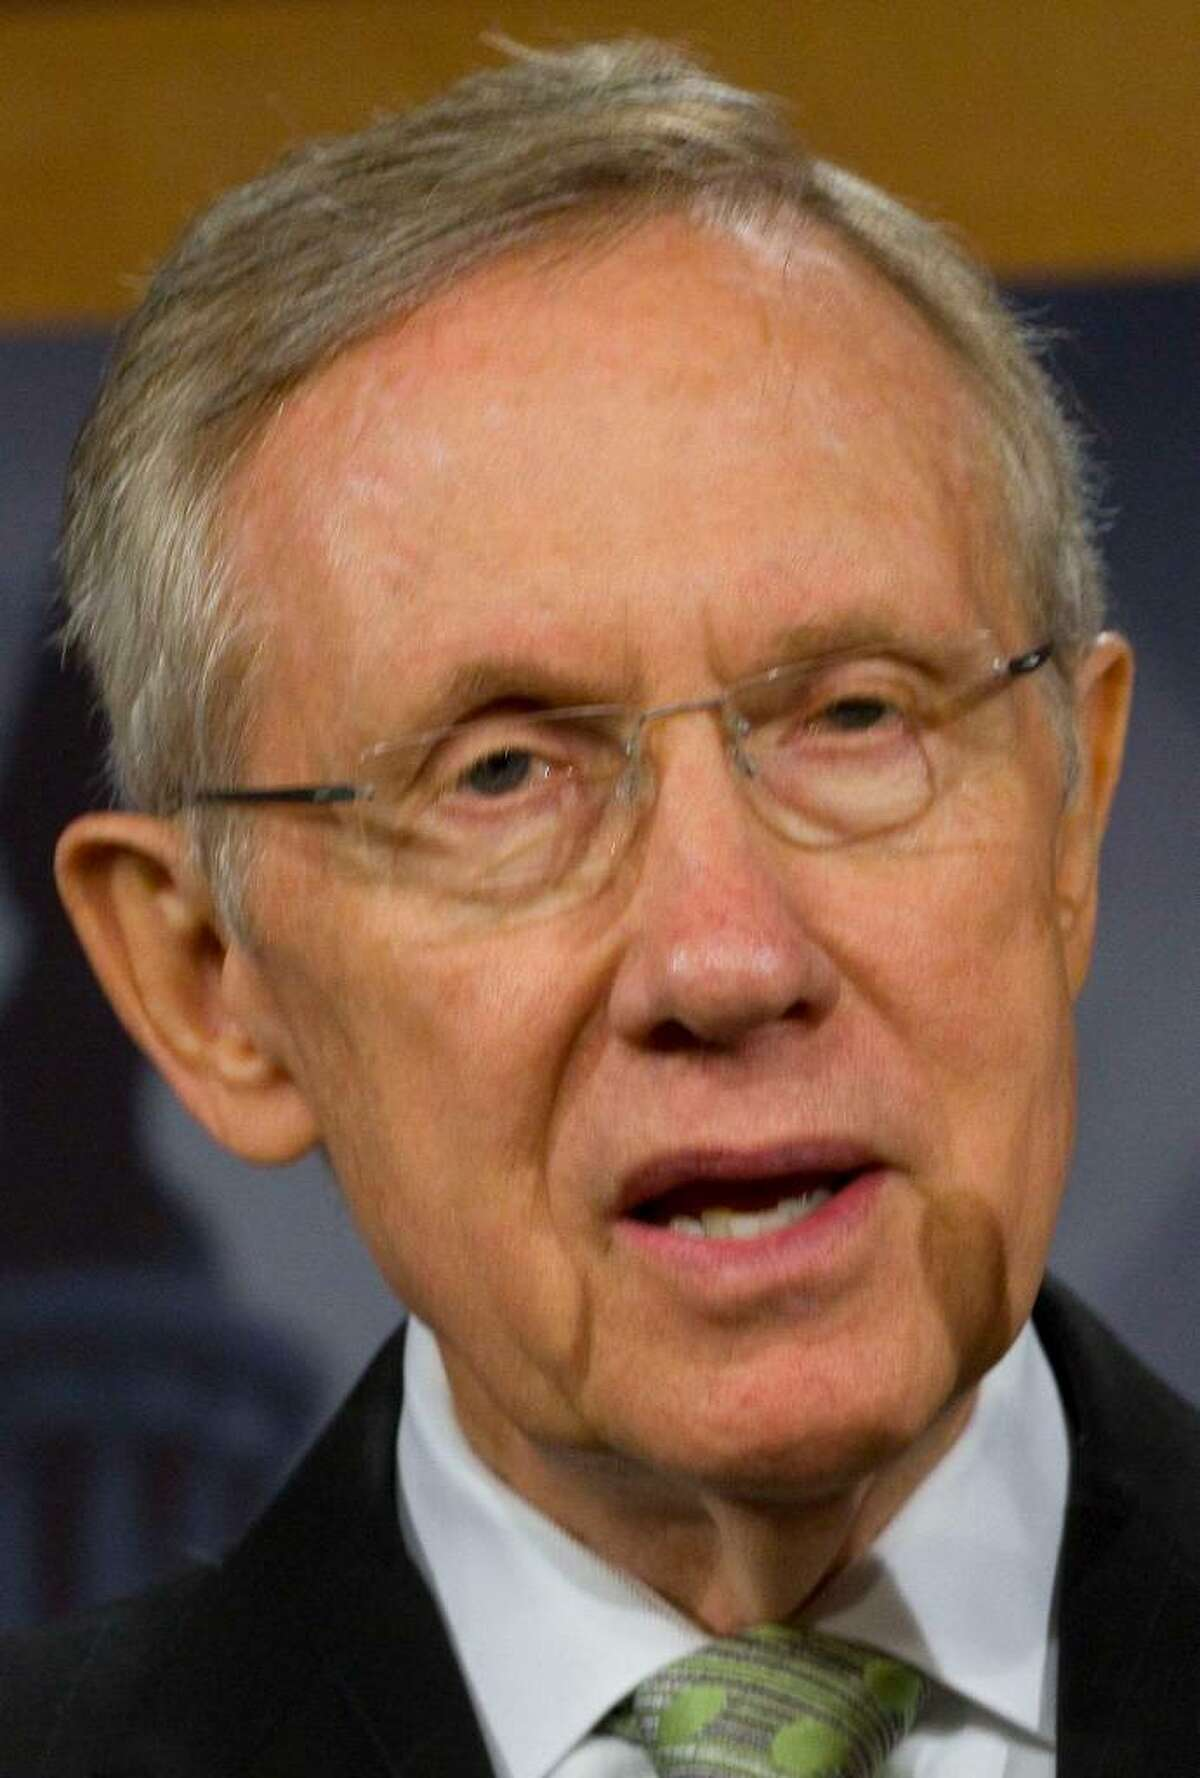 U.S. Sen. Joseph Lieberman is scheduled to hold a fundraiser for embattled Senate Majority Leader Harry Reid, pictured here, in Greenwich Sunday, May 2.